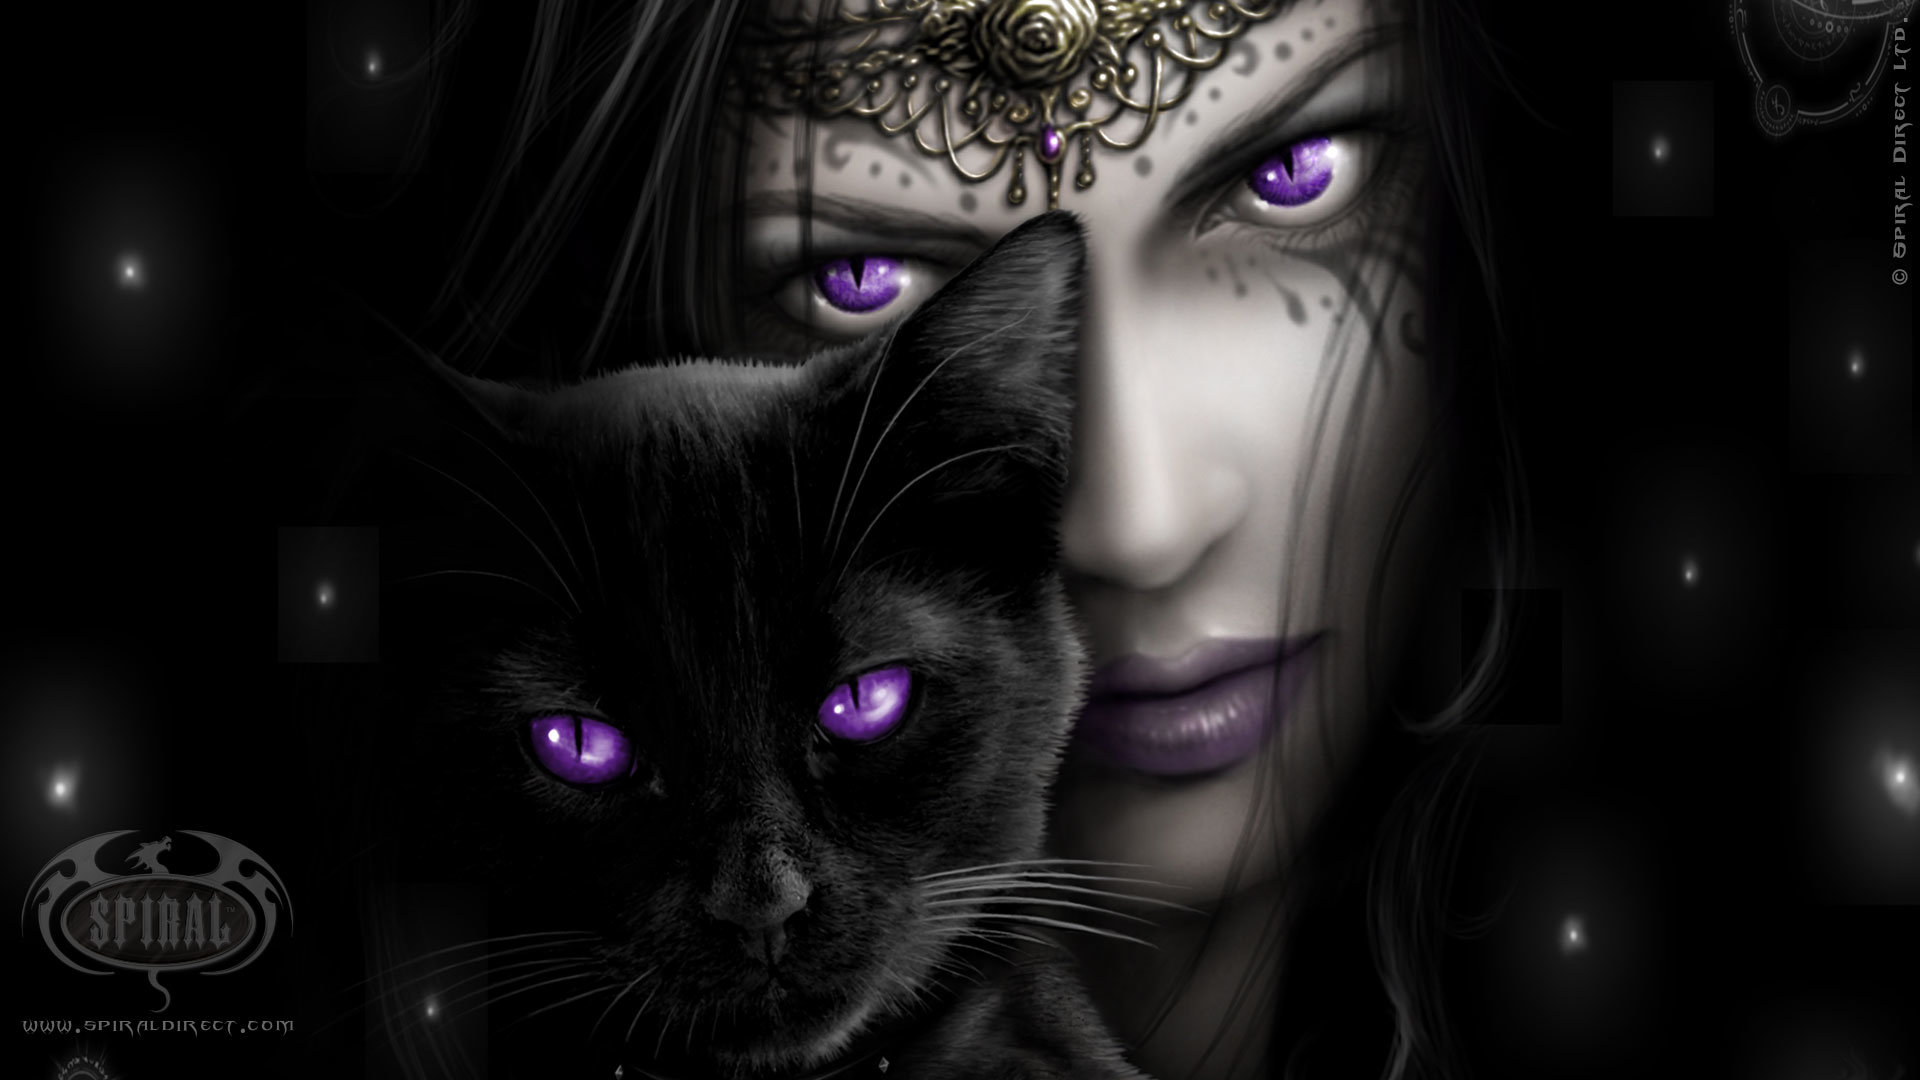 Gothic Wallpapers 1920x1080 Full Hd 1080p Desktop Backgrounds